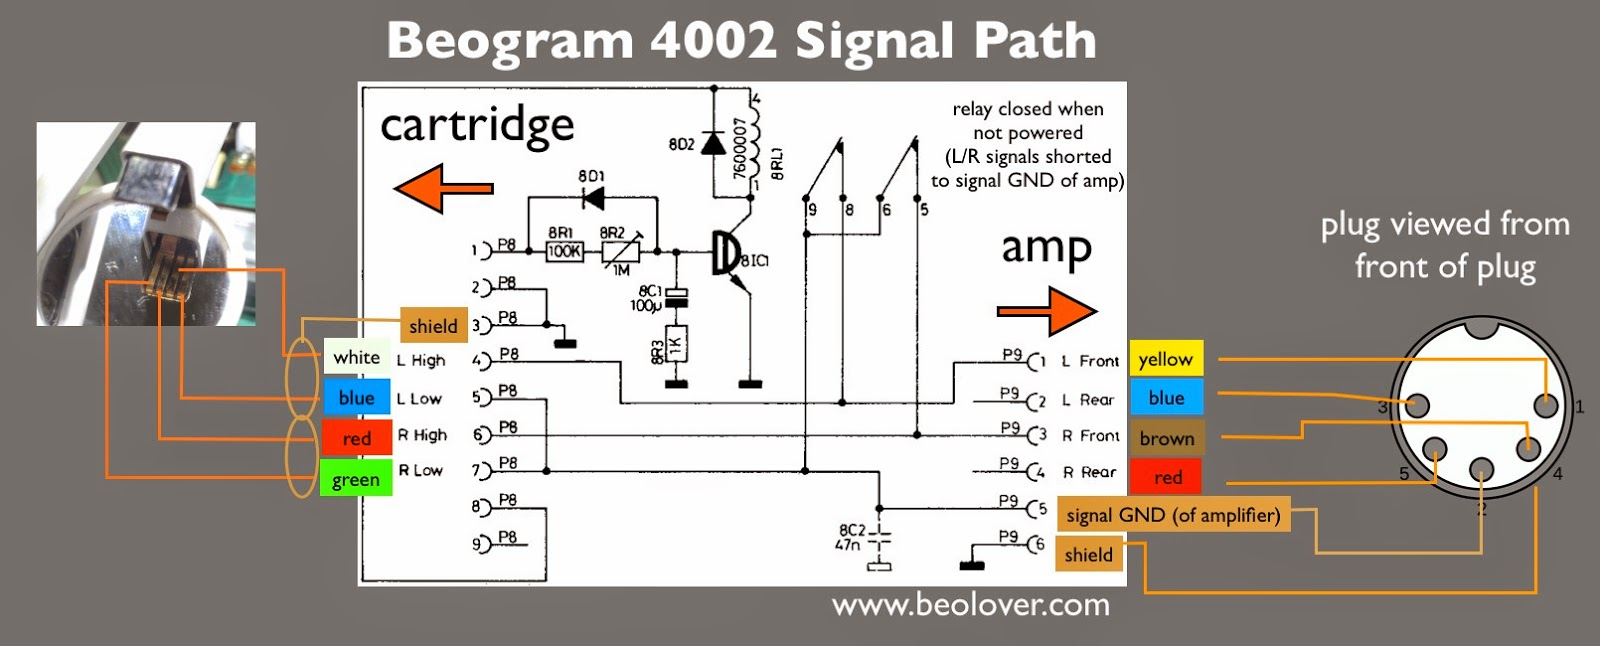 Beolover  Beogram 4002  Signal Path Between Din5 Plug And Cartridge  Plug Replacement